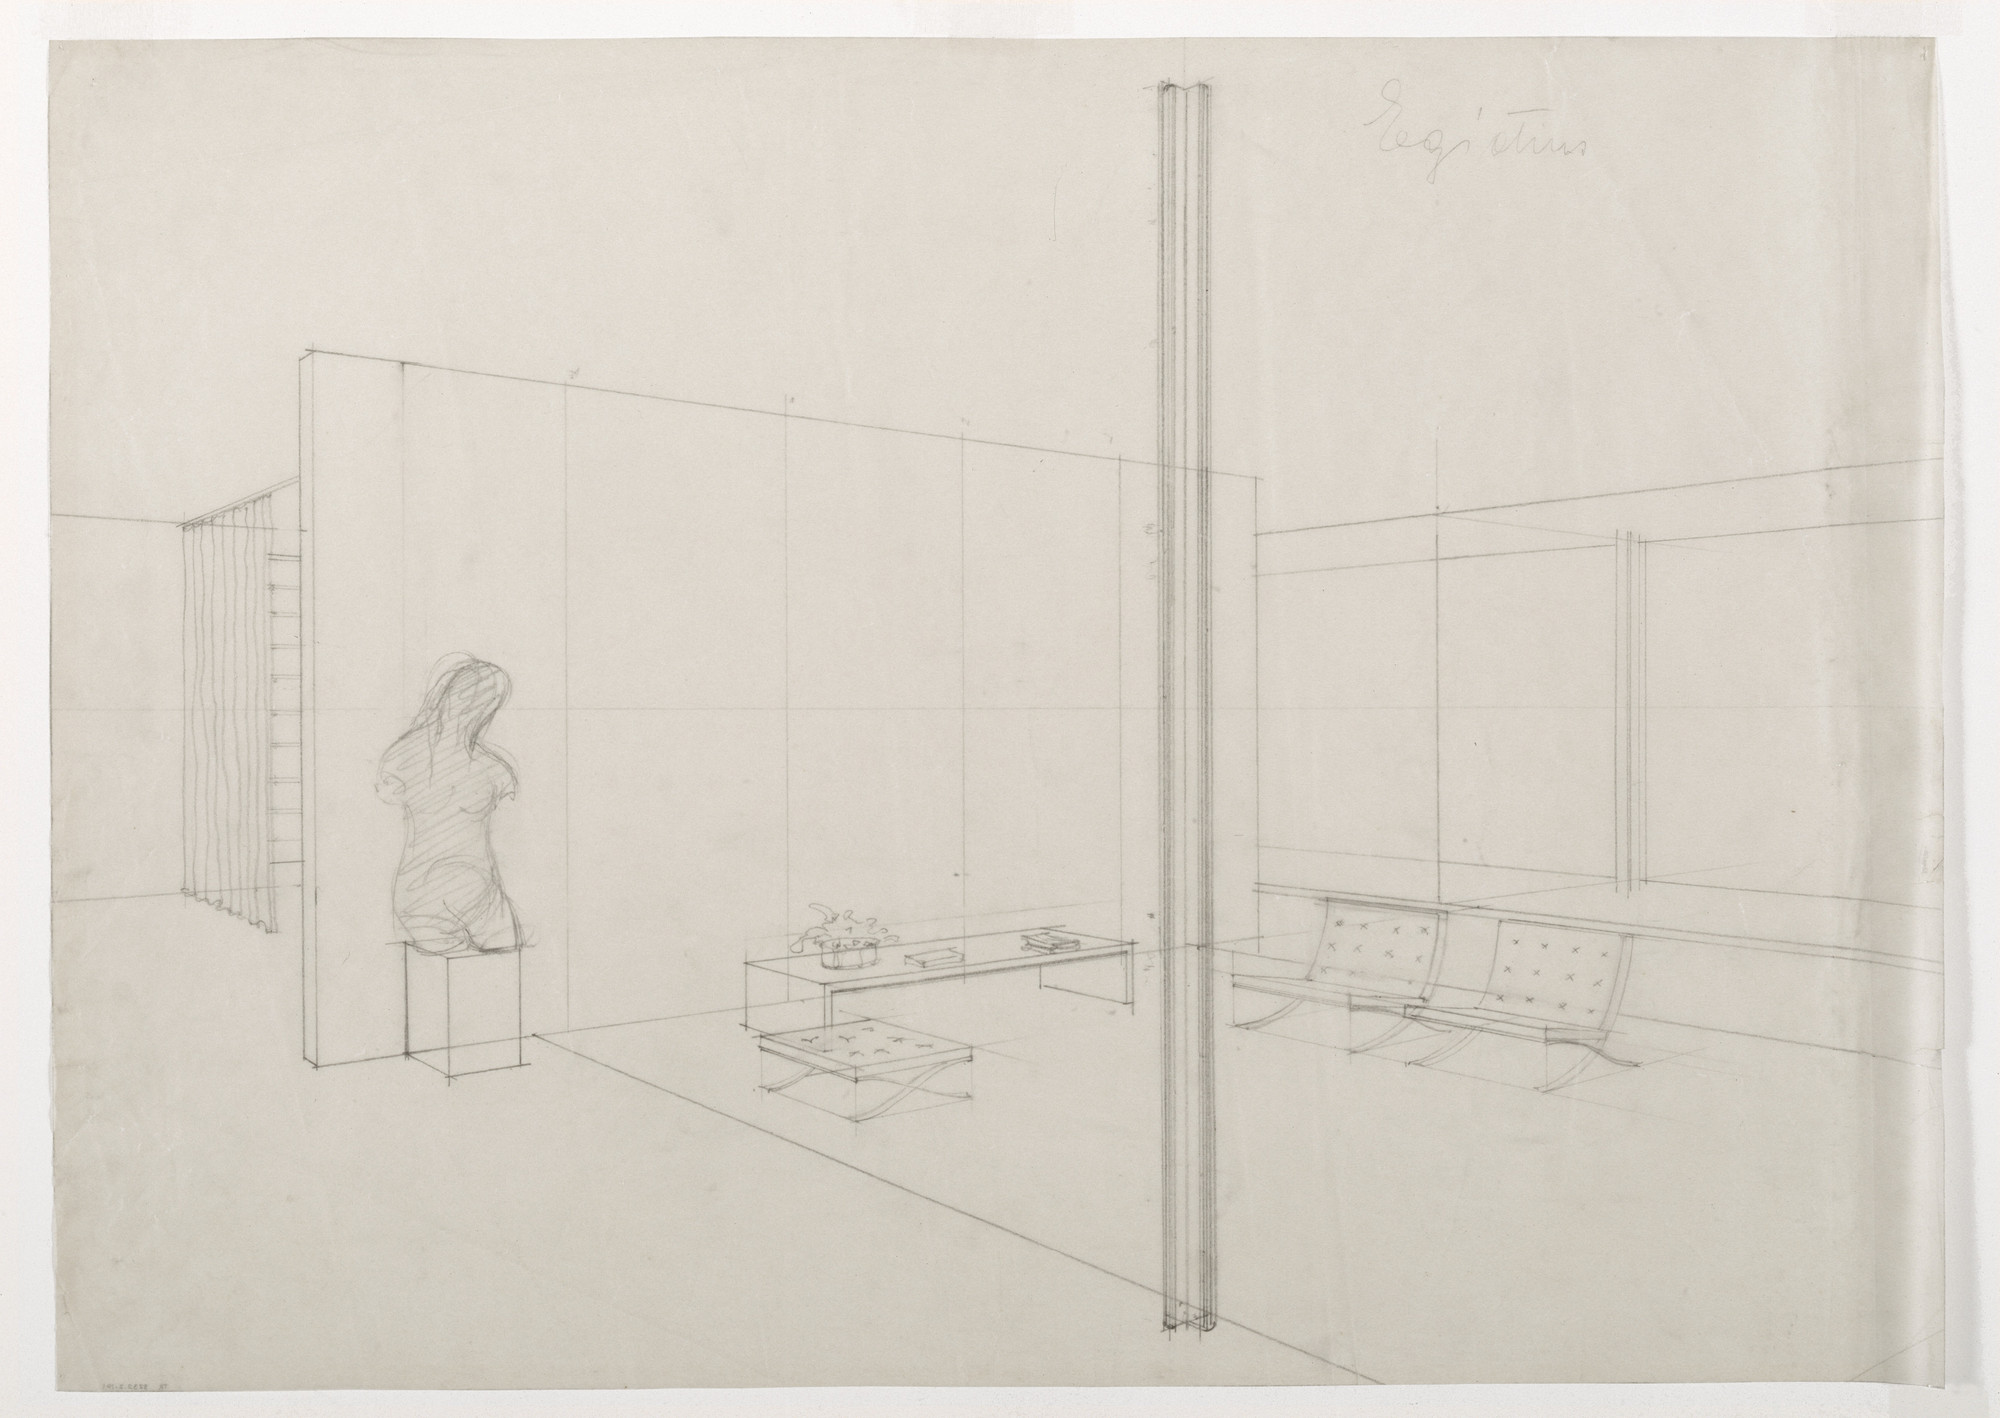 Ludwig Mies van der Rohe. Tugendhat House, Brno, Czech Republic, Perspective of living room. 1928-30